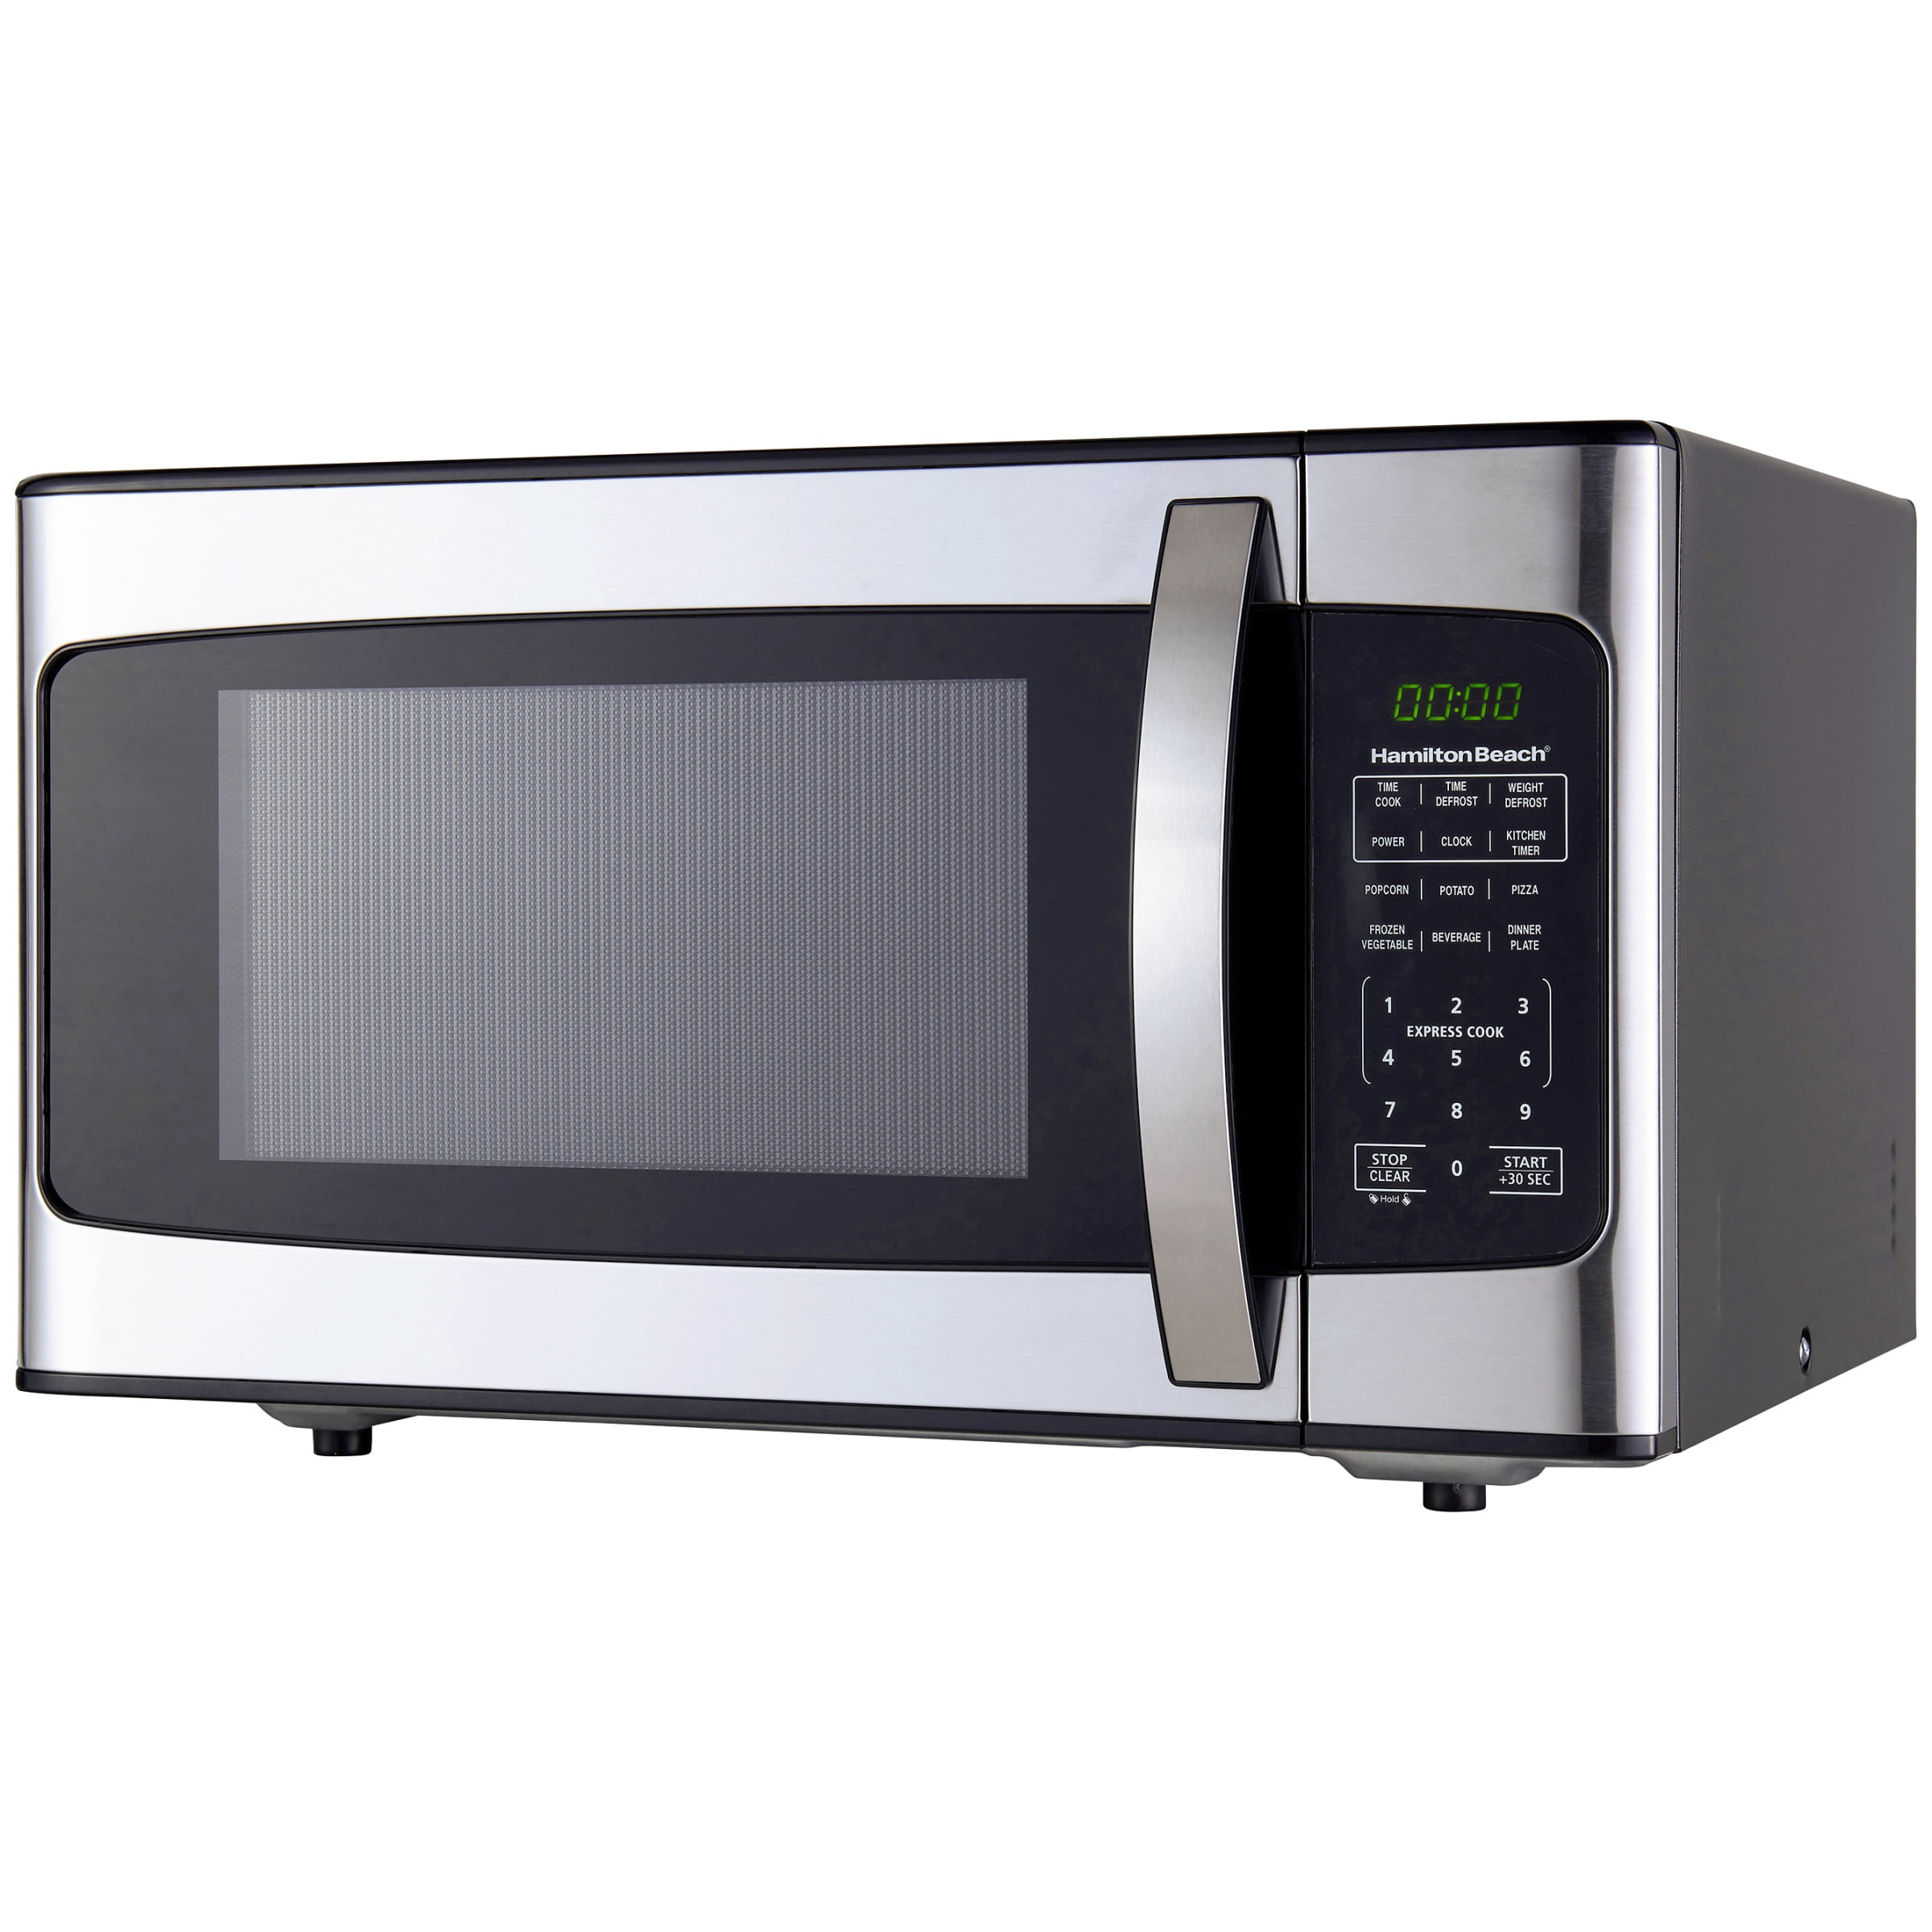 Hamilton Beach 1.1 Cu. Ft. 1000W Stainless Steel Microwave ...